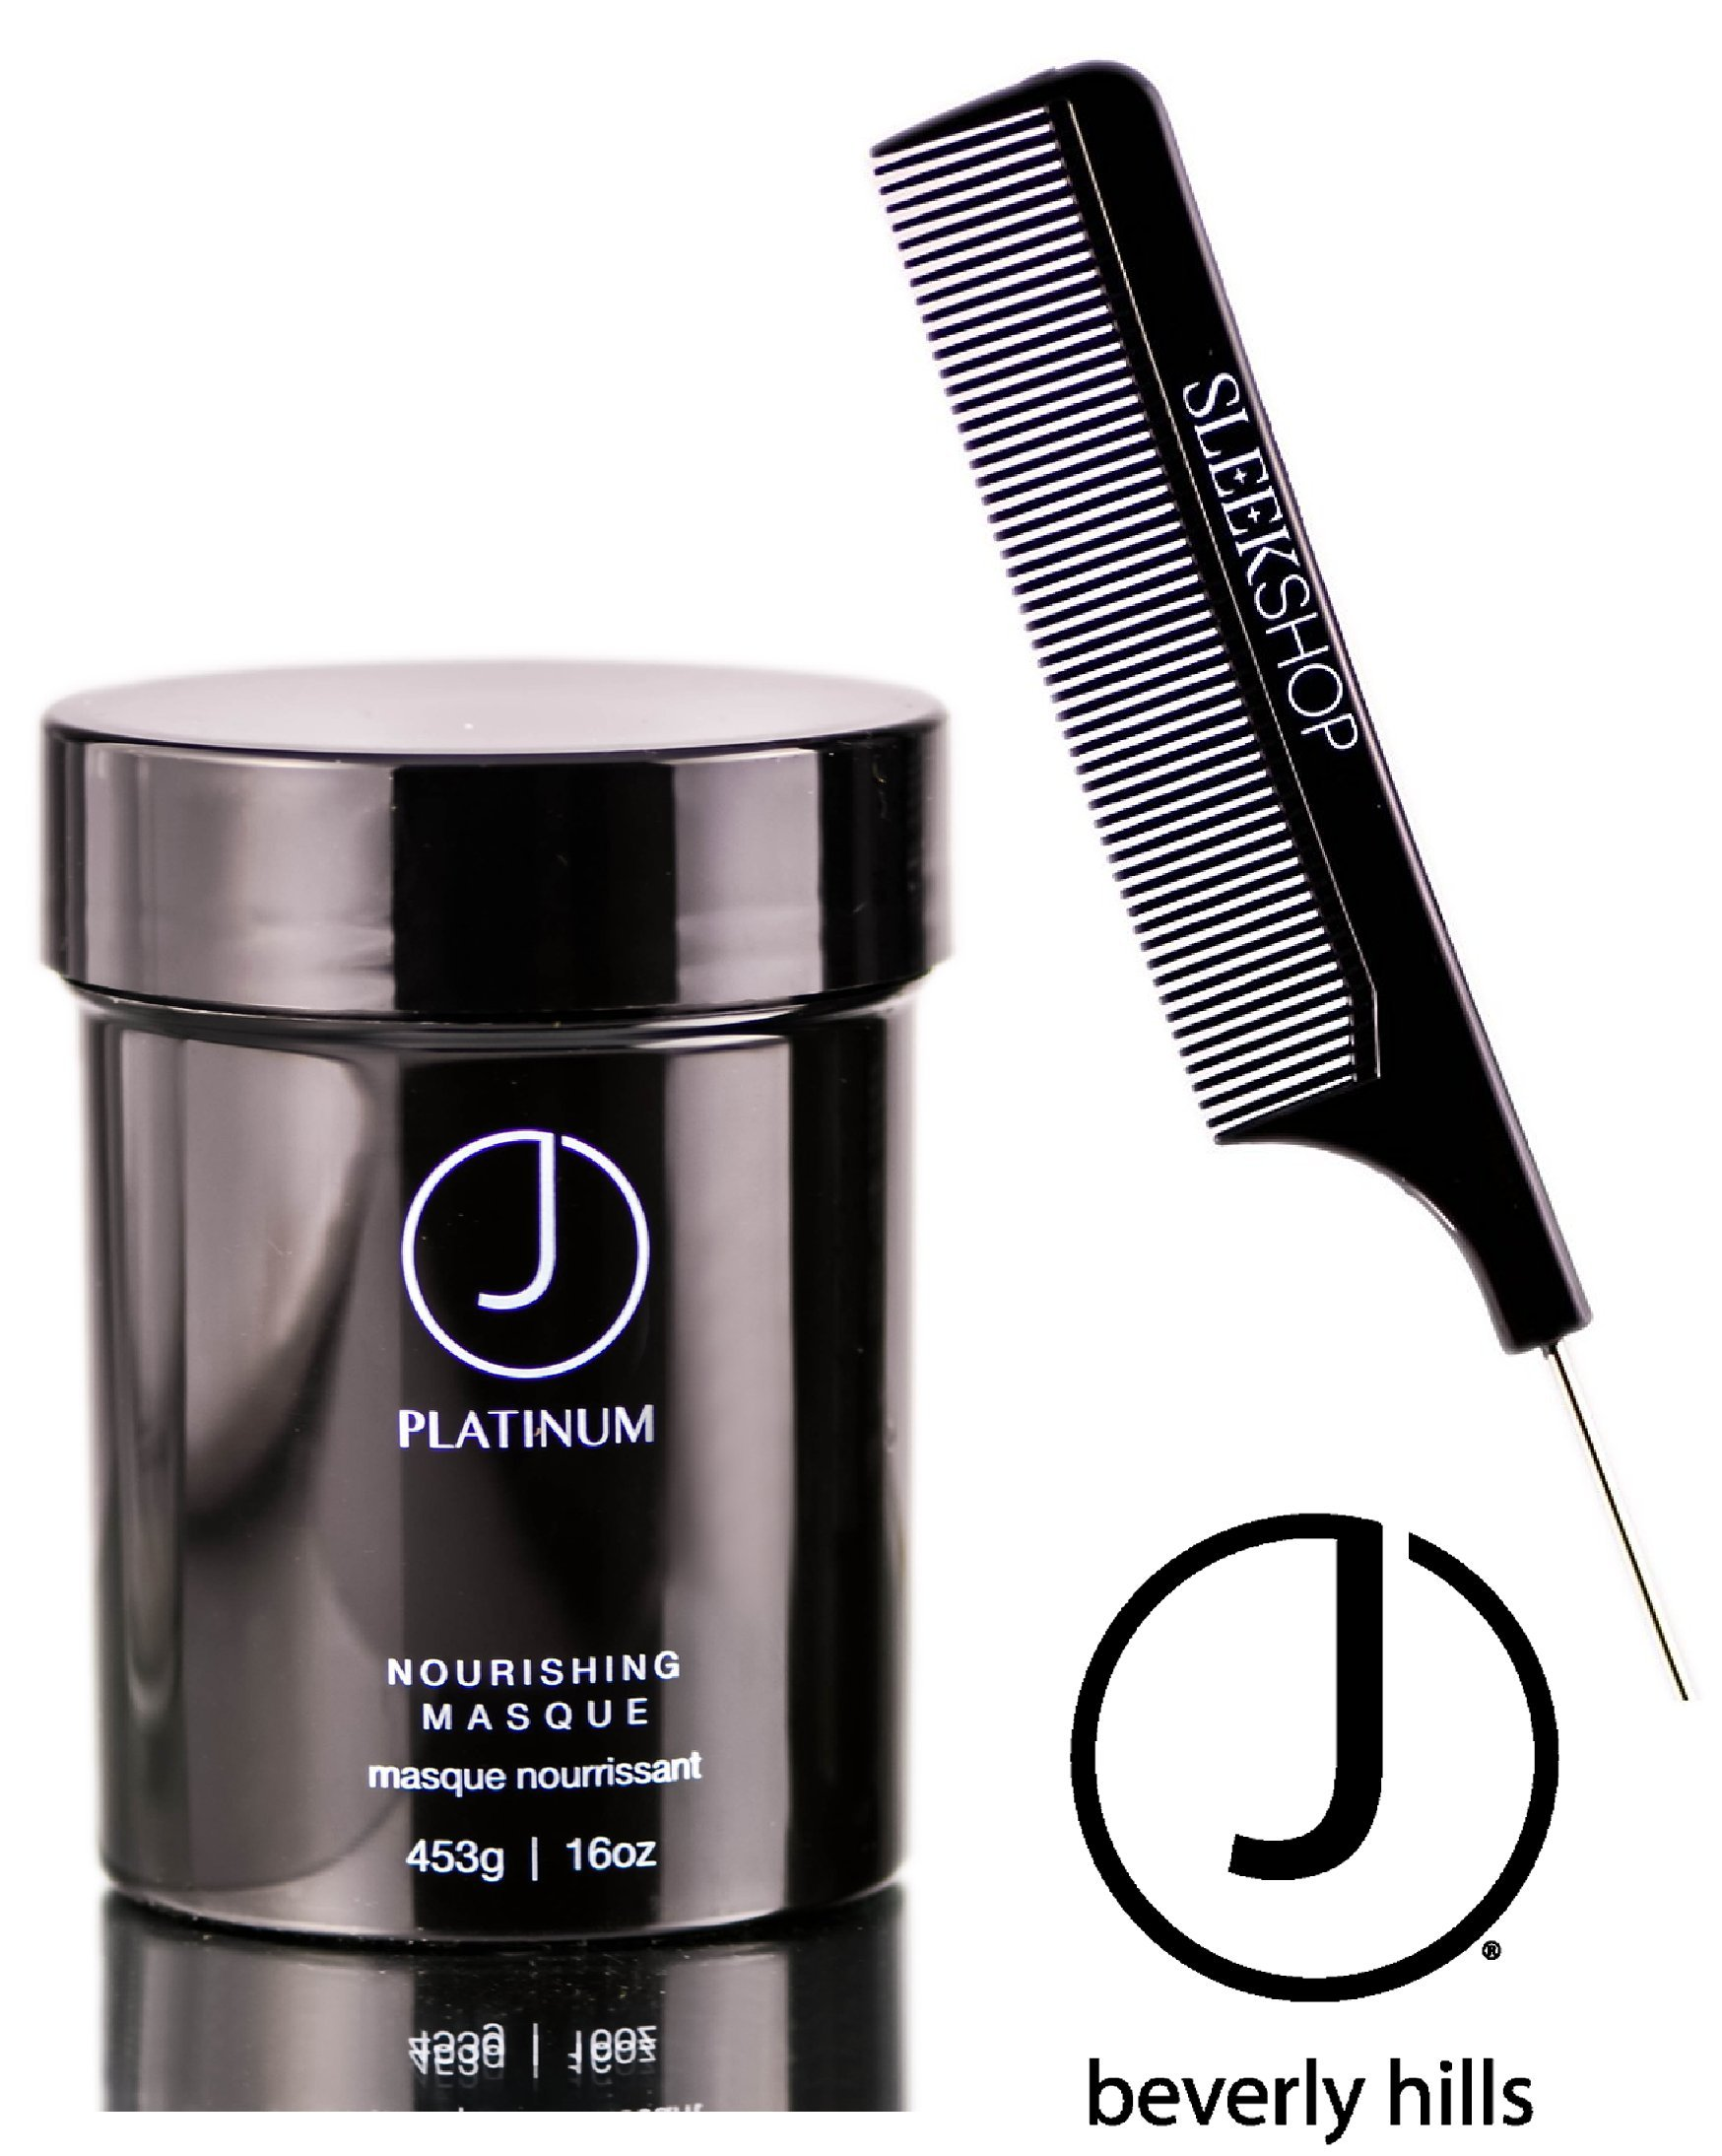 J Beverly Hills Platinum Nourishing Masque (with Sleek Steel Pin Tail Comb) (16 oz / 453 g - large PRO size)